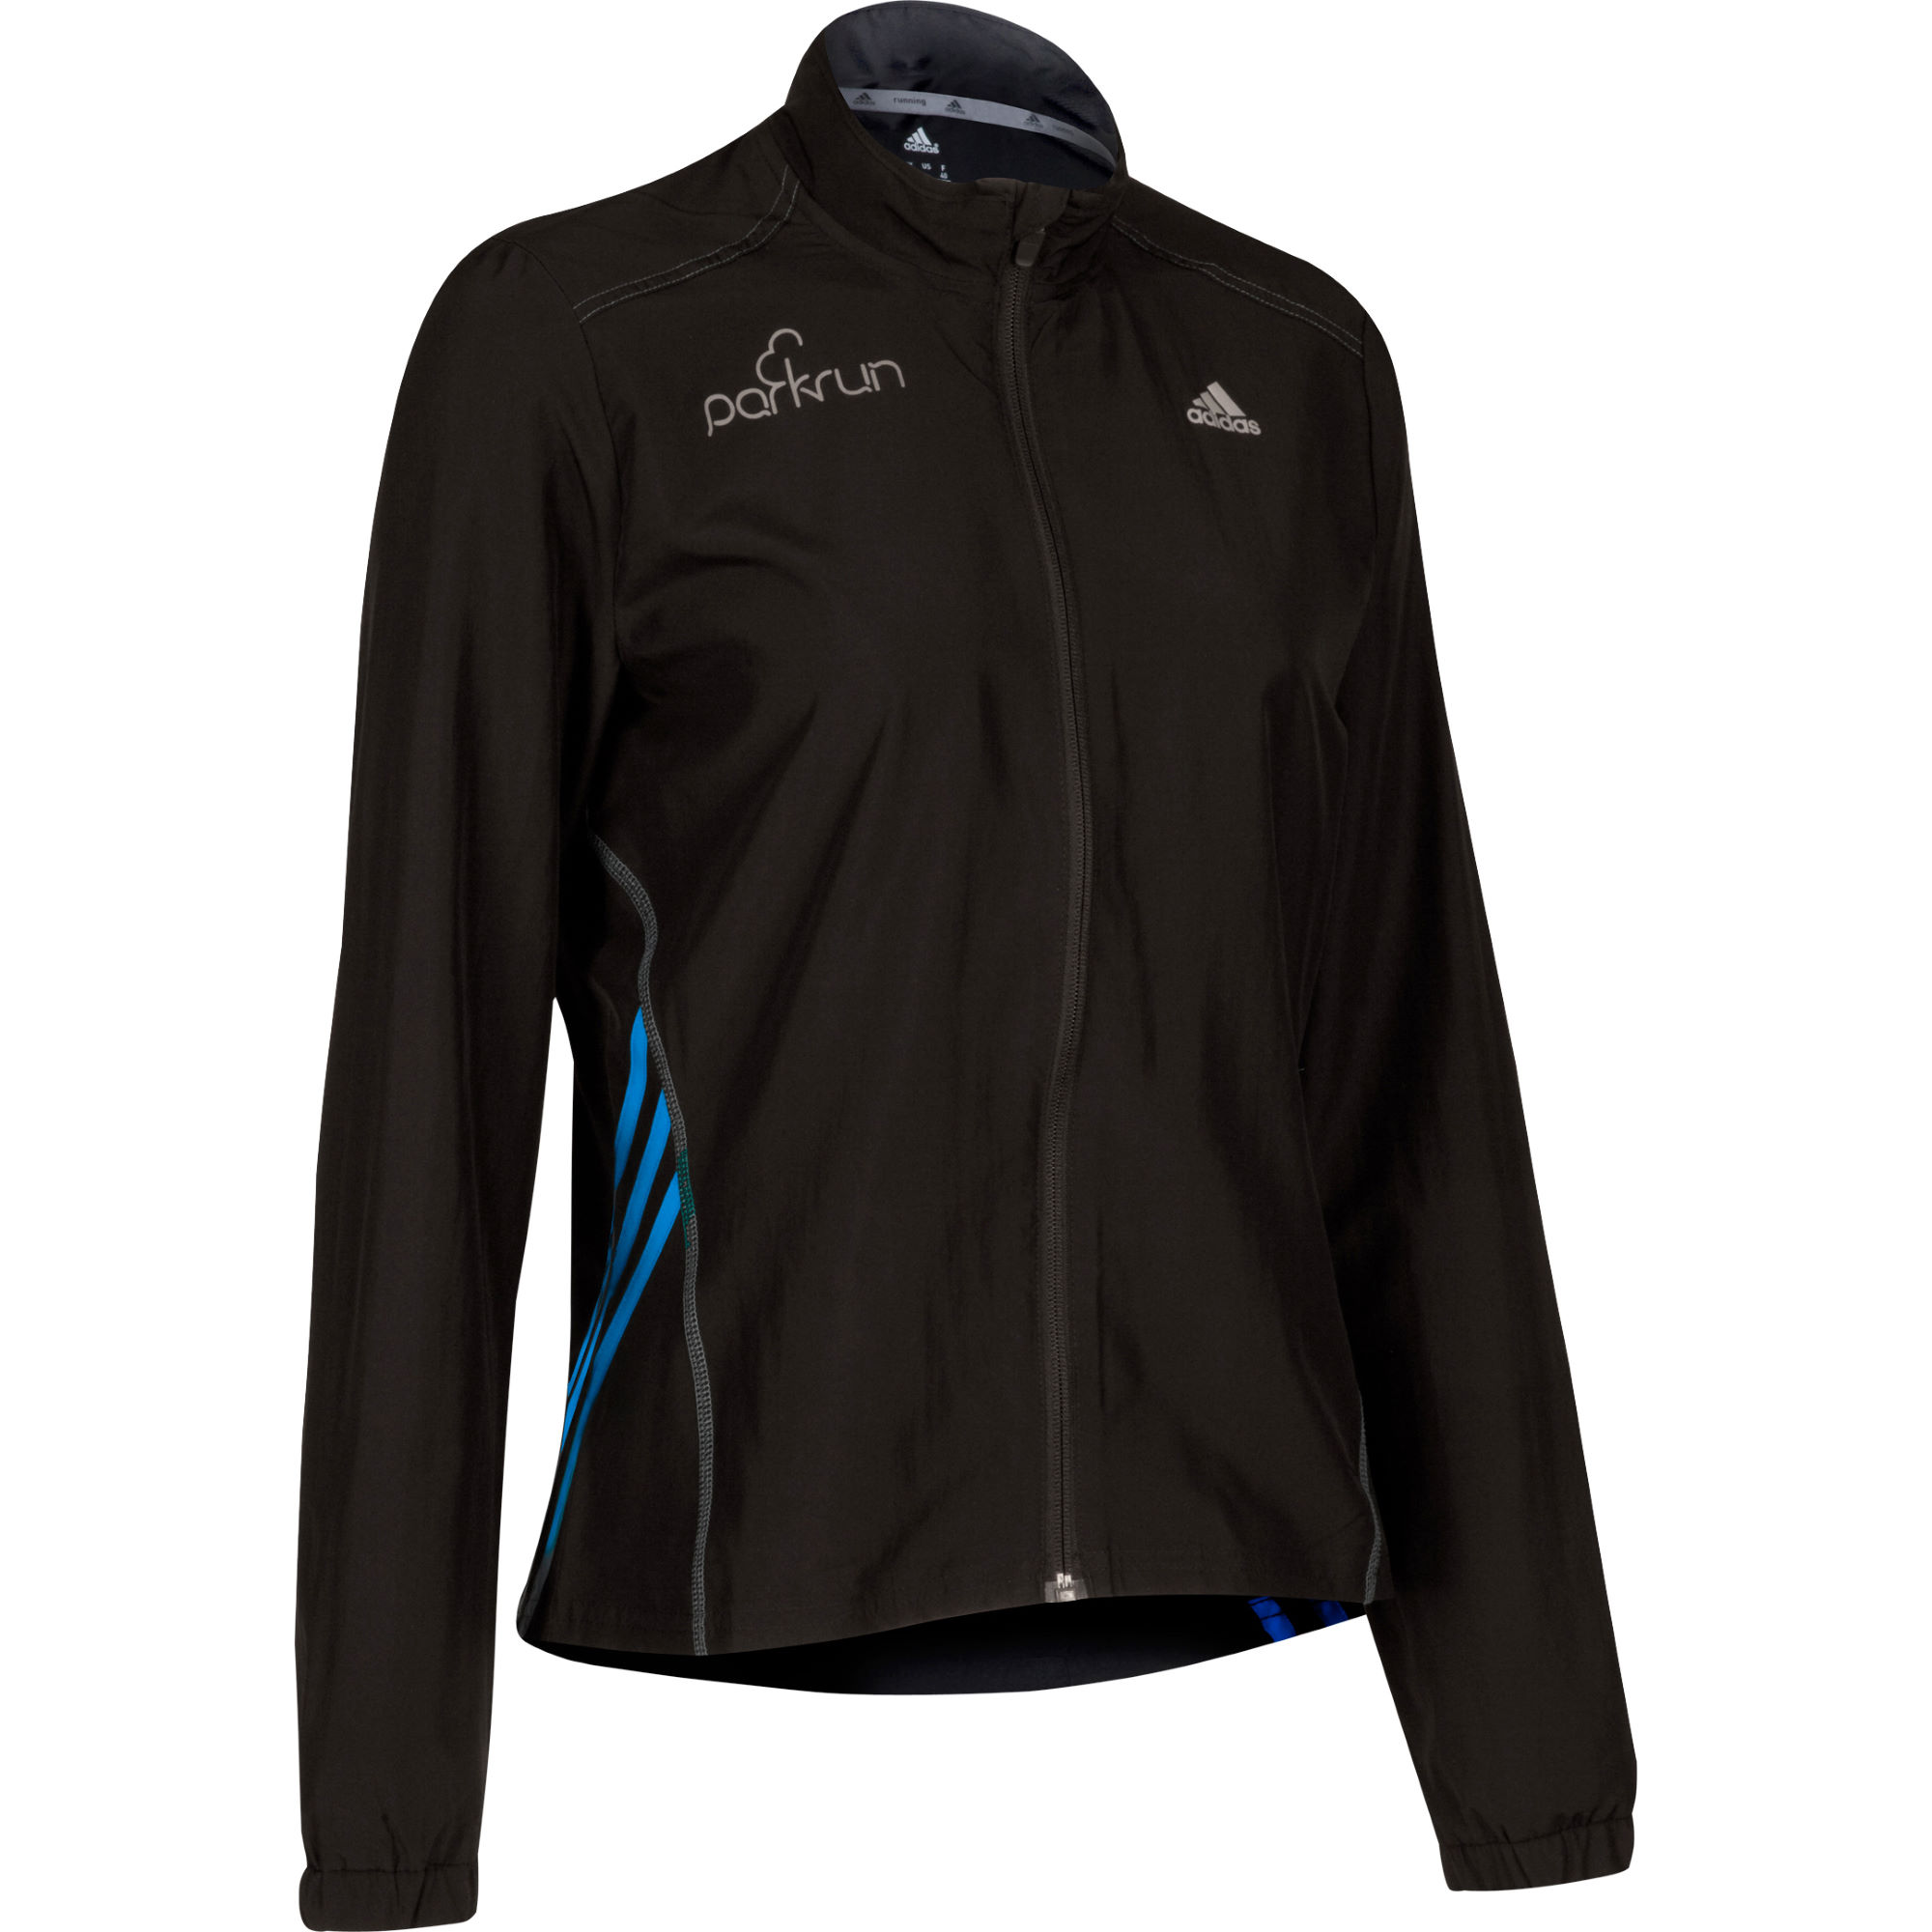 Womens Adidas Jackets l-d-c.co.uk